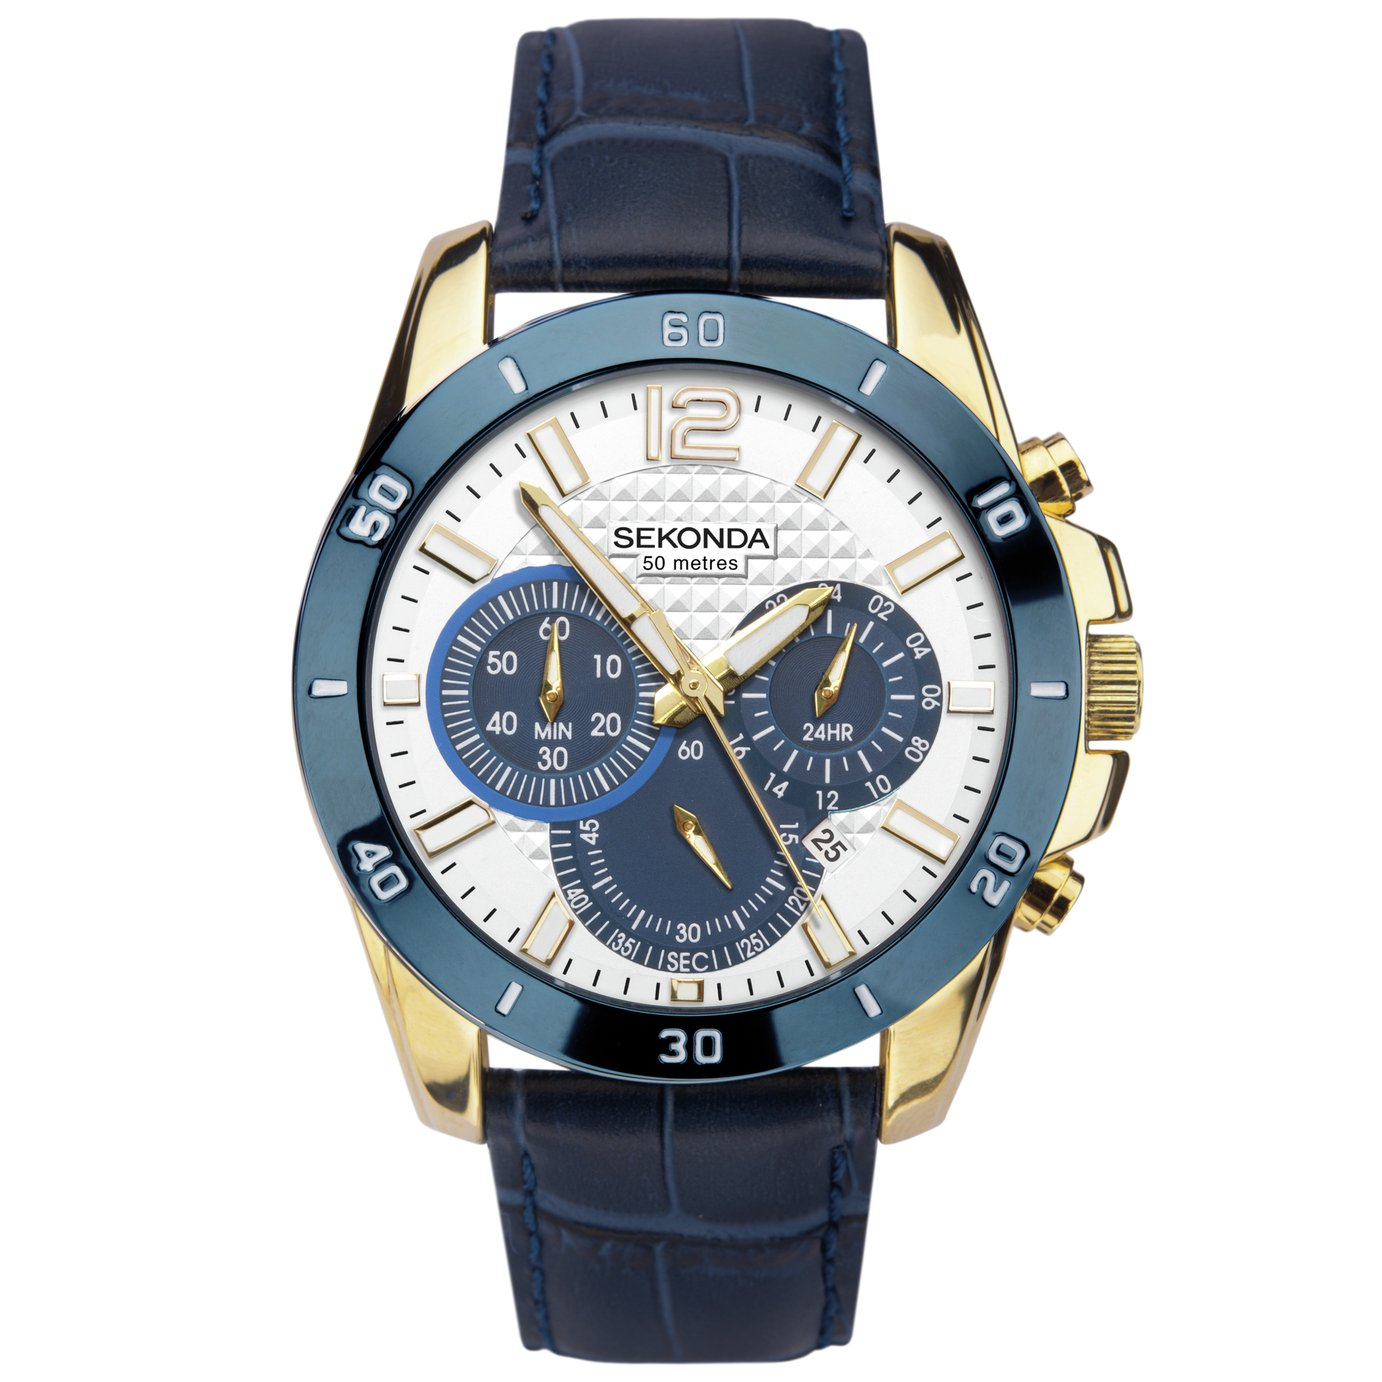 Sekonda Men's Chronograh Blue Leather Strap Watch